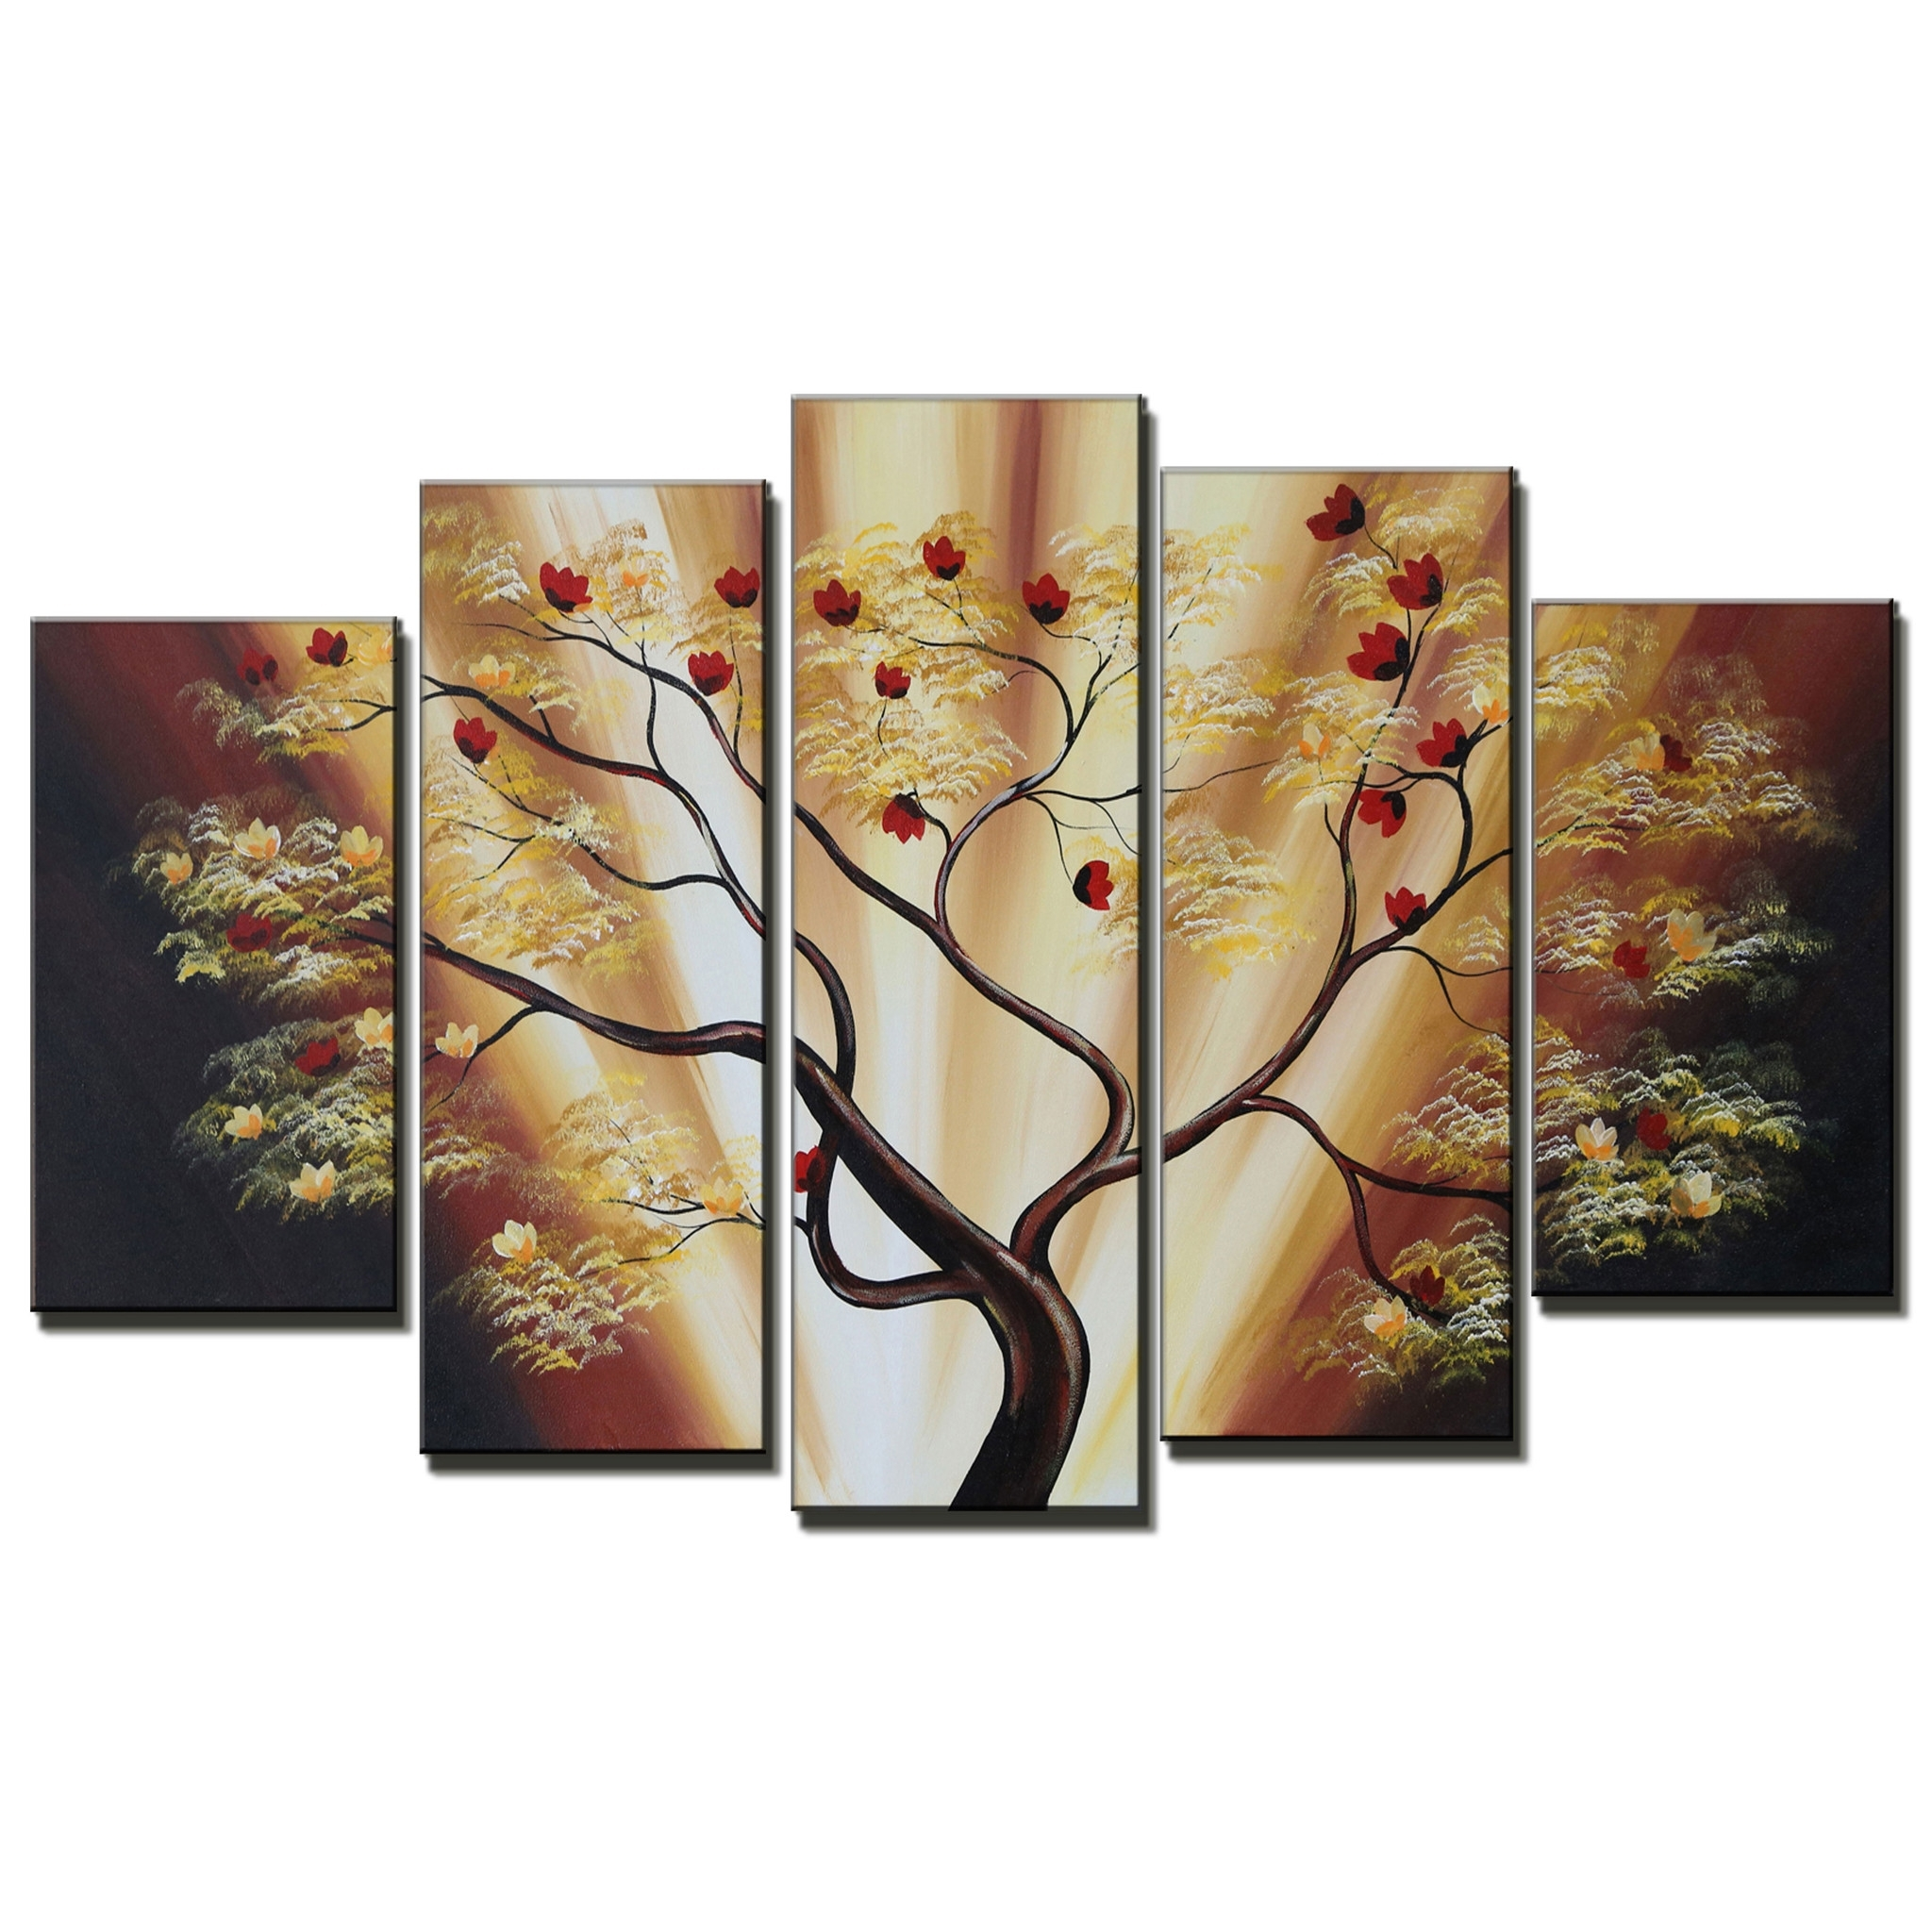 Bronze Tree Wall Art Regarding Latest Bronze Contemporary Tree Canvas Wall Art Oil Painting (View 3 of 15)